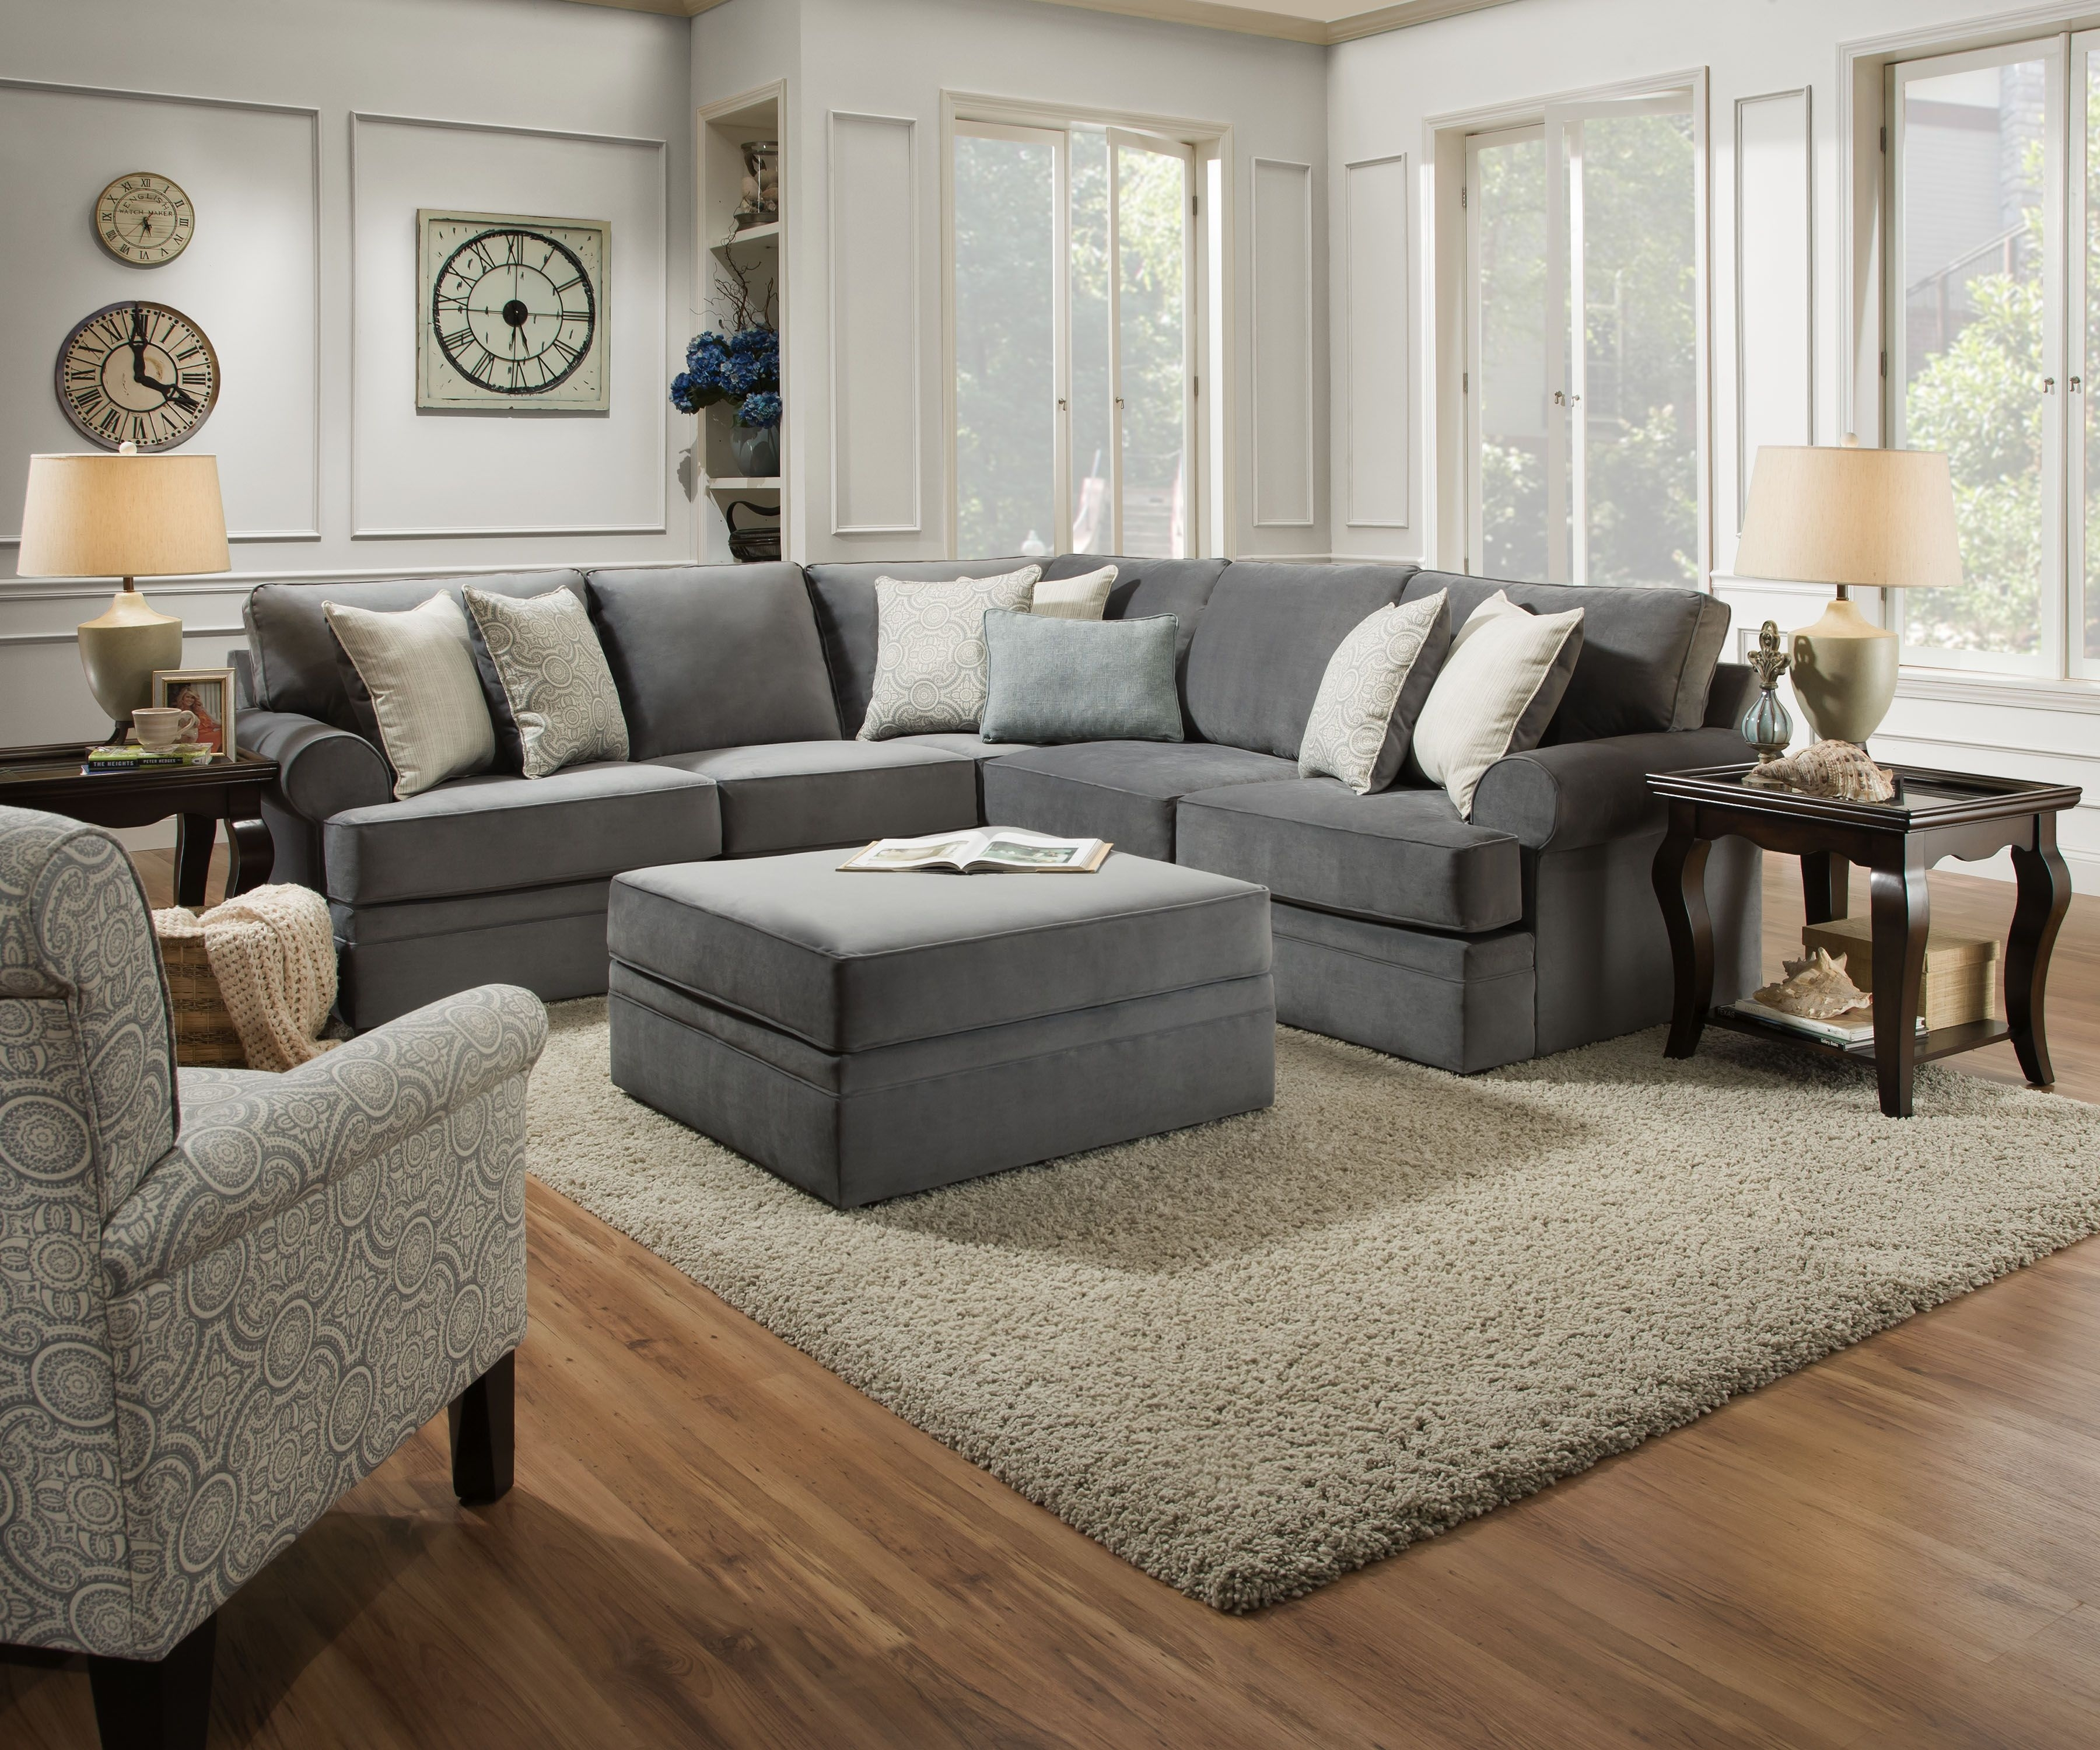 Laf Sofa Seven Seas | Baci Living Room pertaining to Avery 2 Piece Sectionals With Raf Armless Chaise (Image 17 of 30)